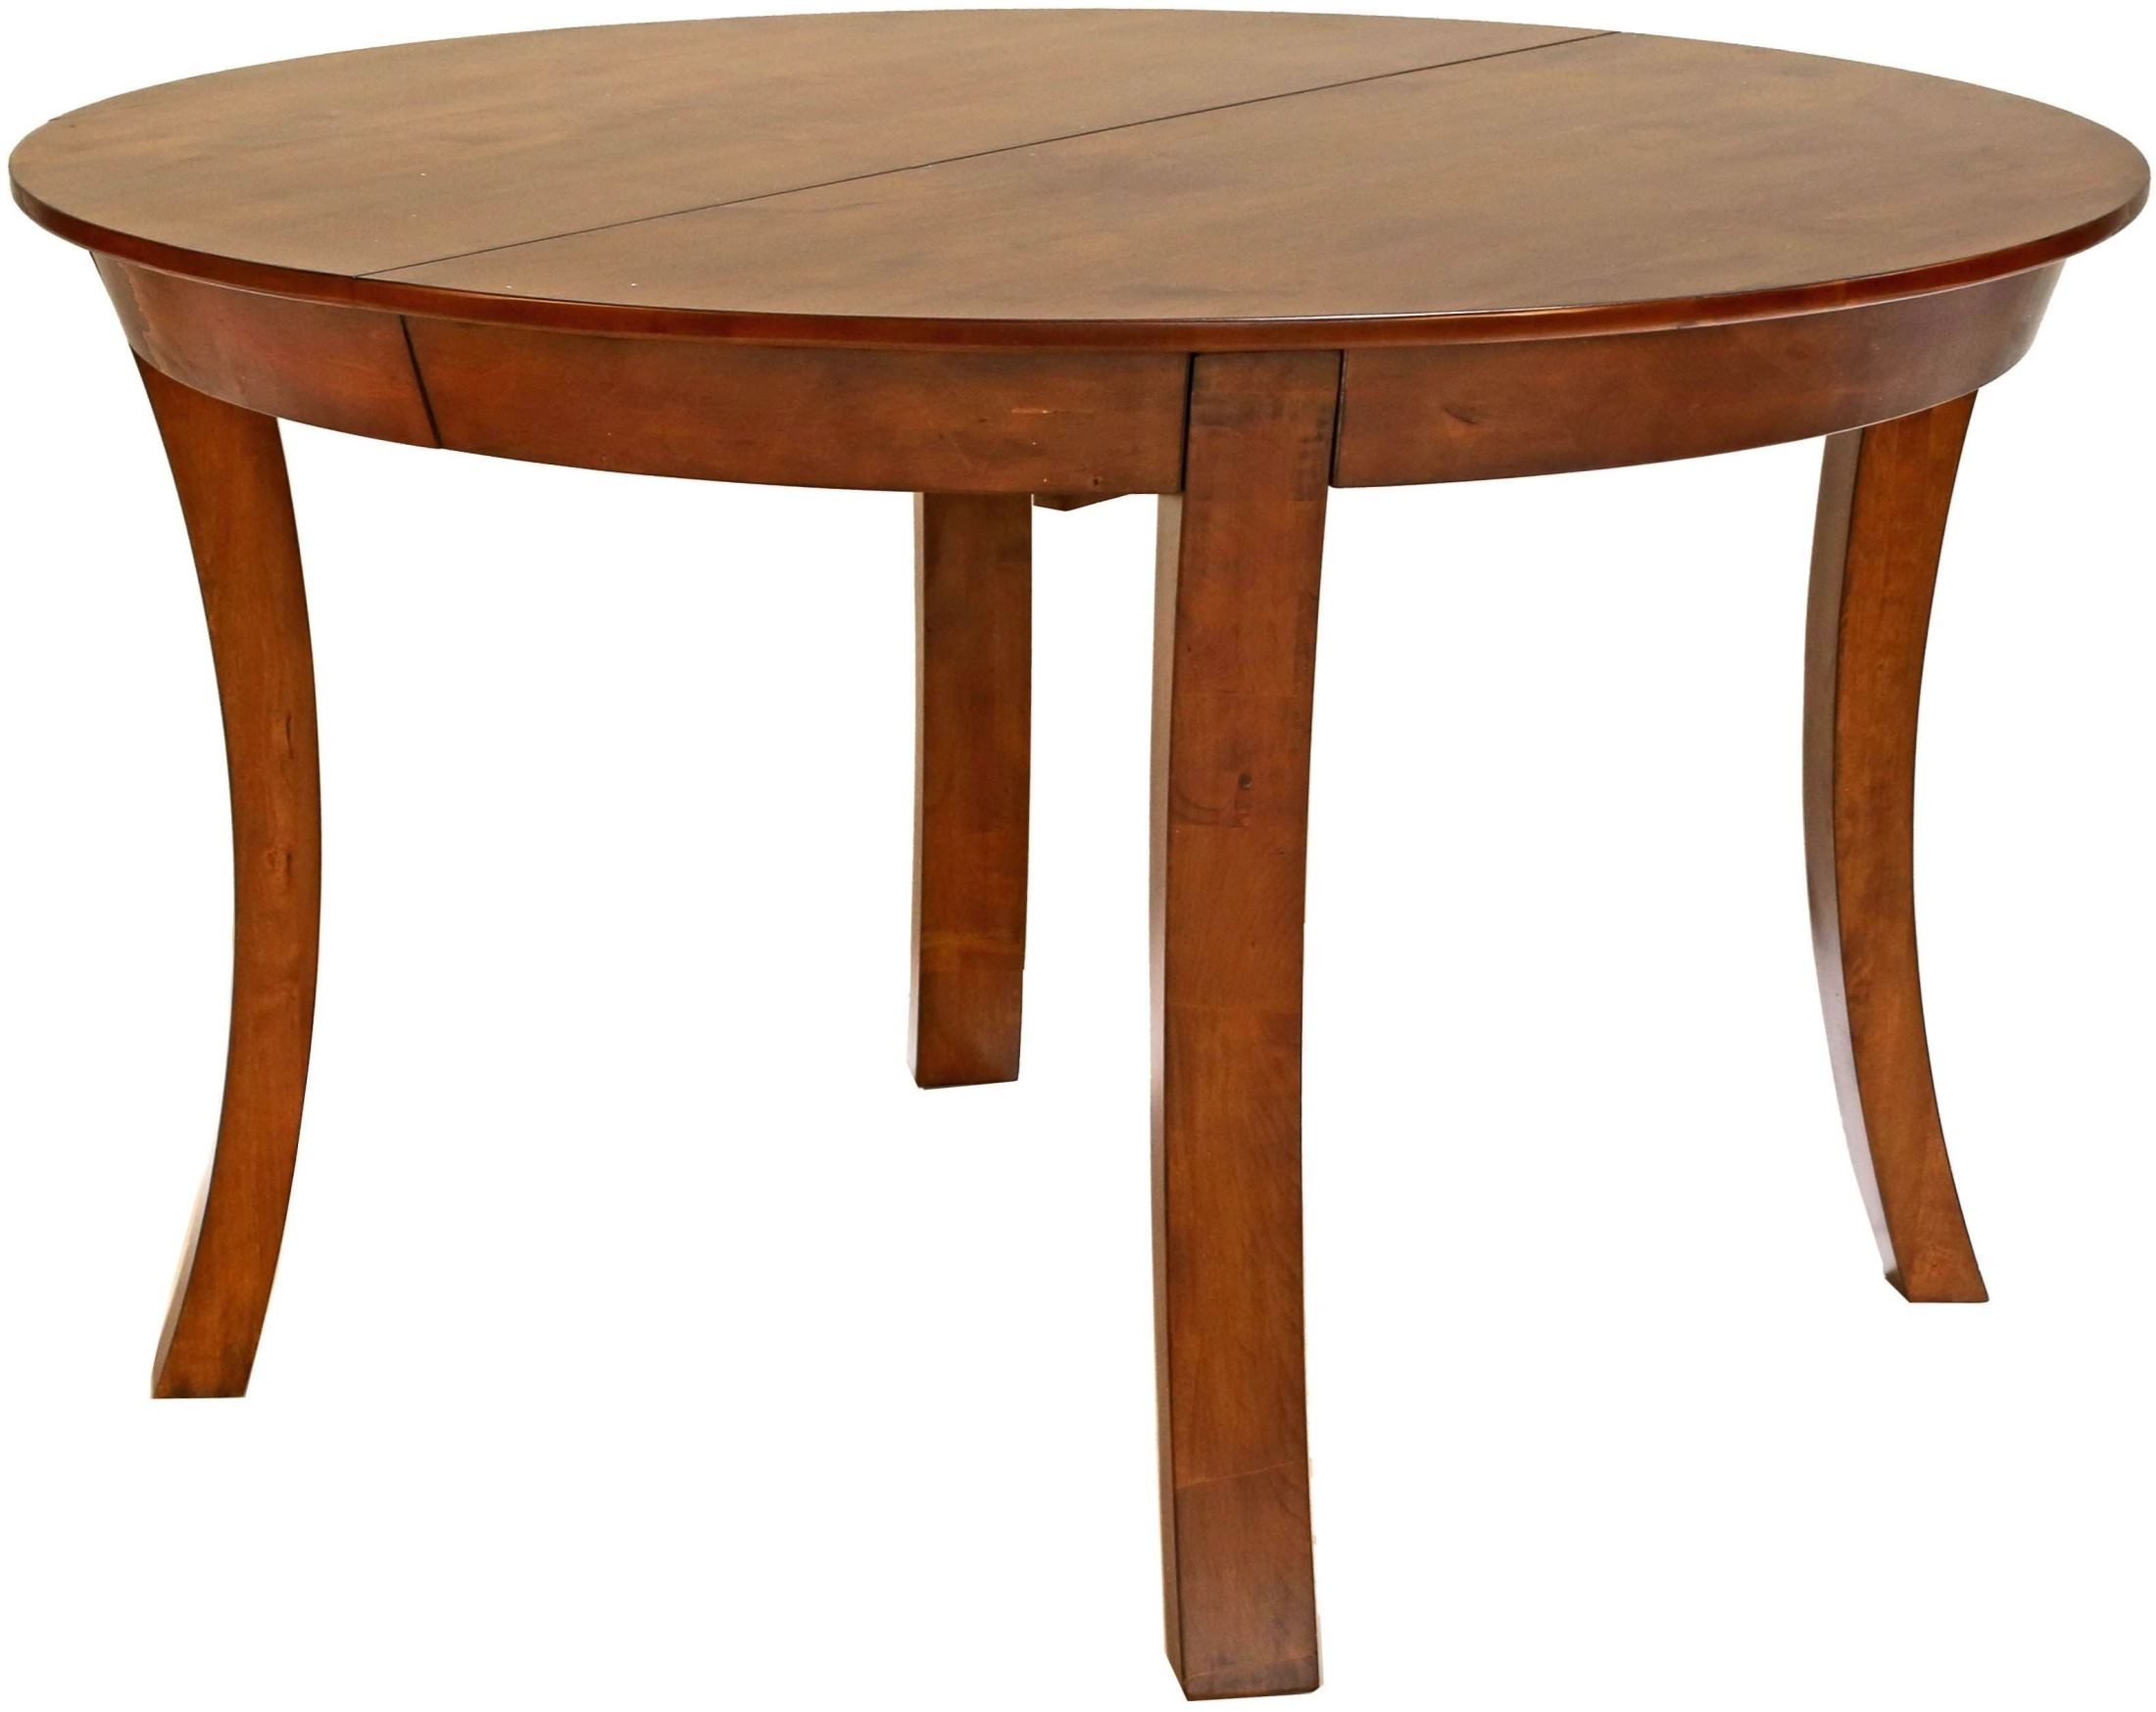 Grant Park 70 Pecan Extendable Oval Dining Table GPKPE6500 A